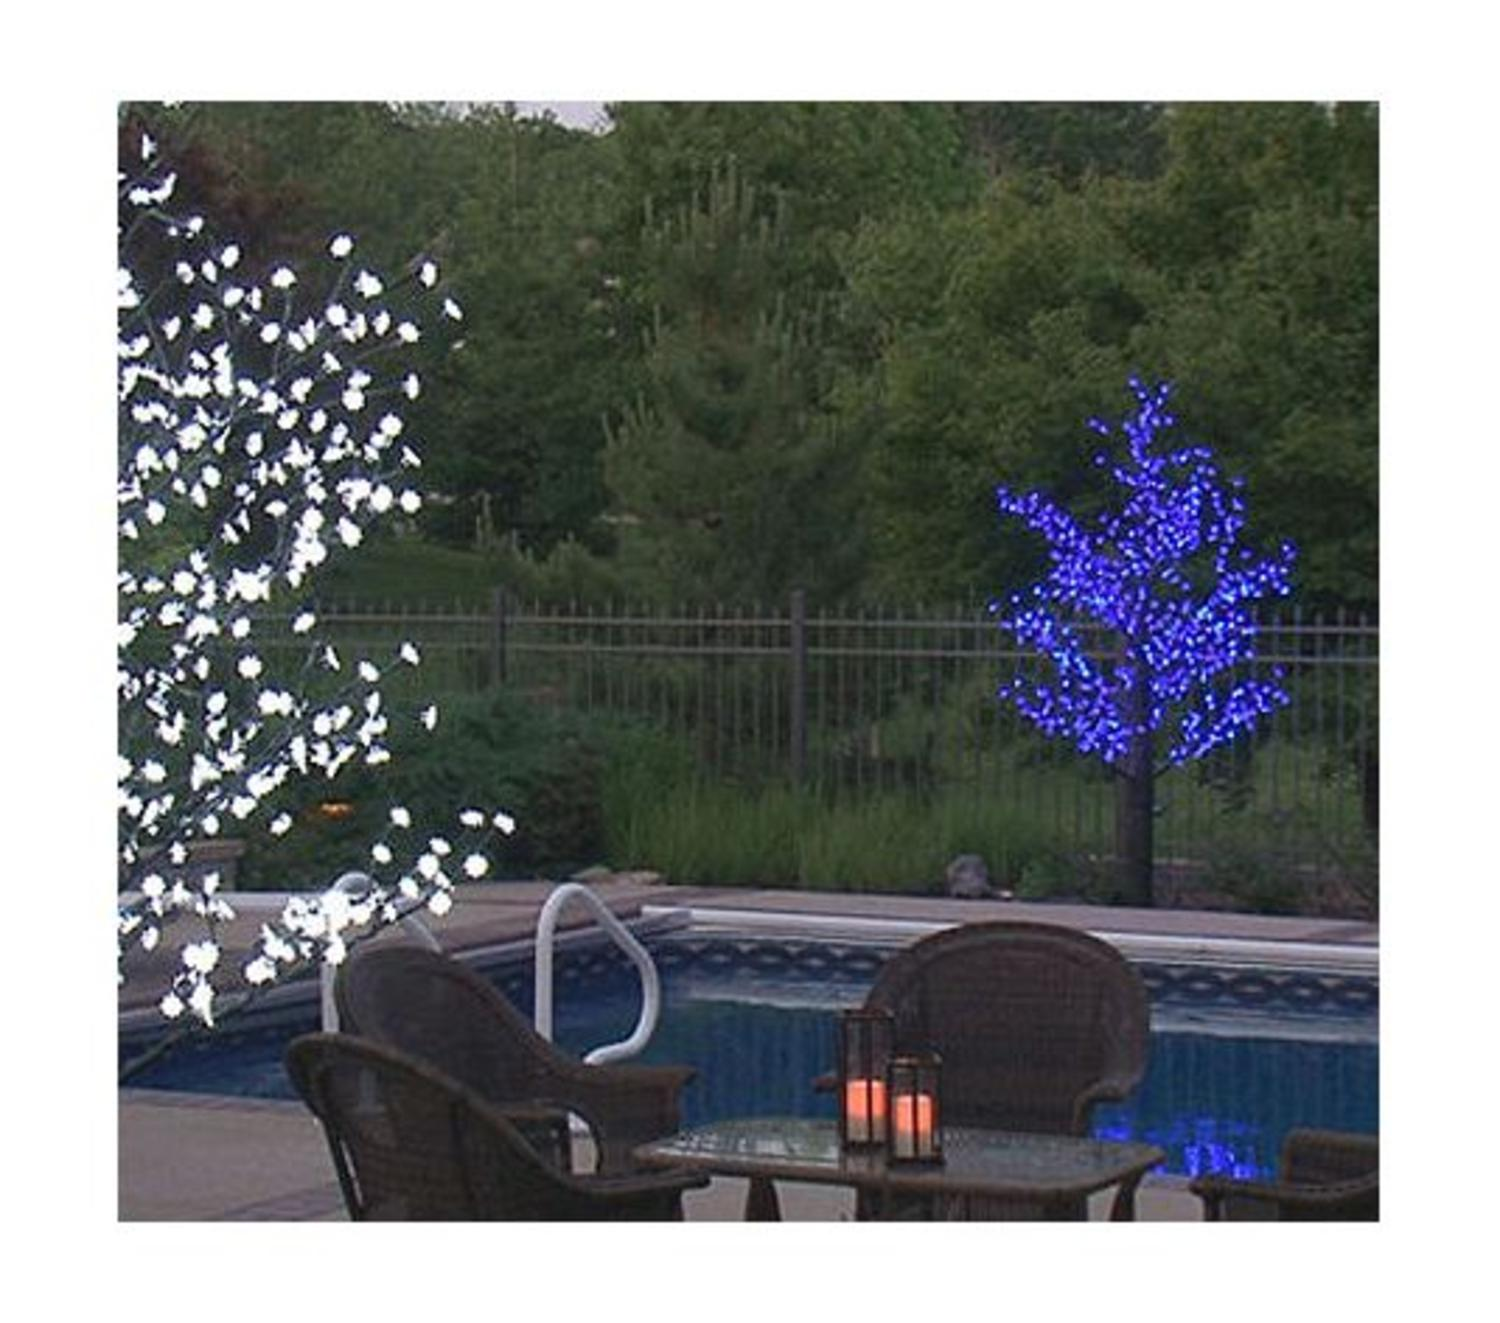 free u prelit led outdoor christmas tree decoration blue flower lights with outdoor christmas trees - Prelit Led Christmas Tree